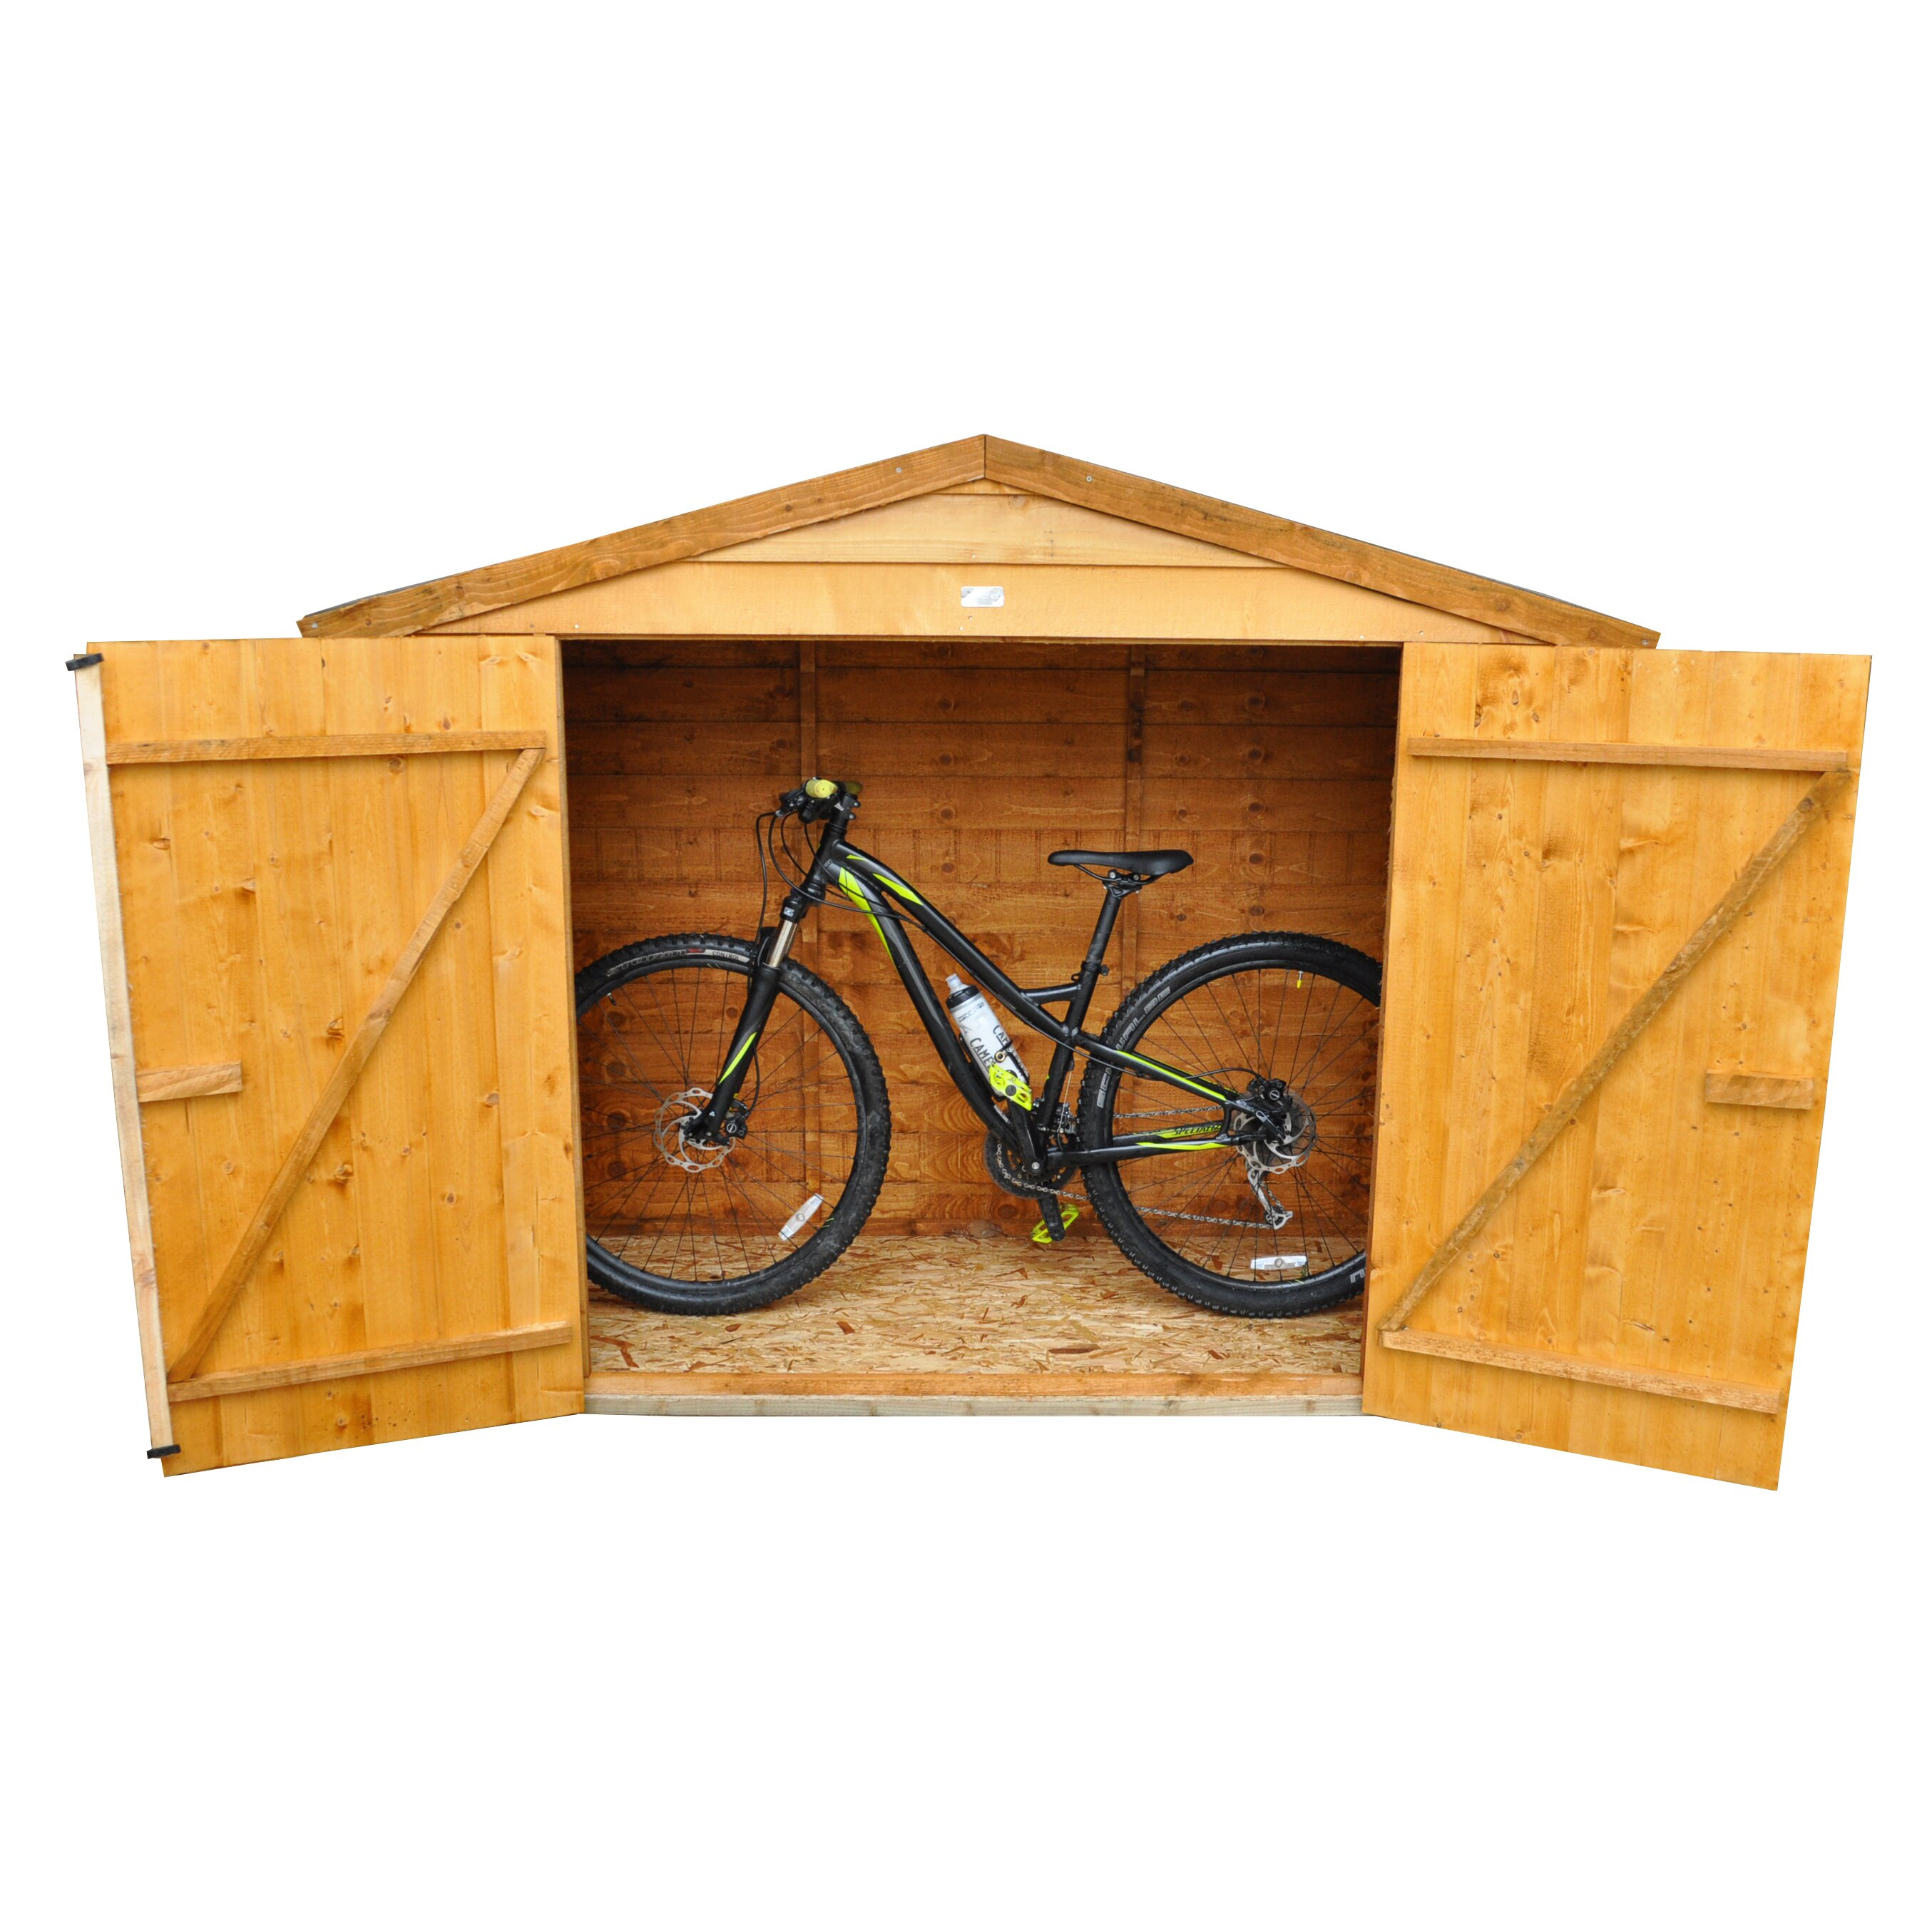 6 x 3 wooden bike shed wayfair uk. Black Bedroom Furniture Sets. Home Design Ideas